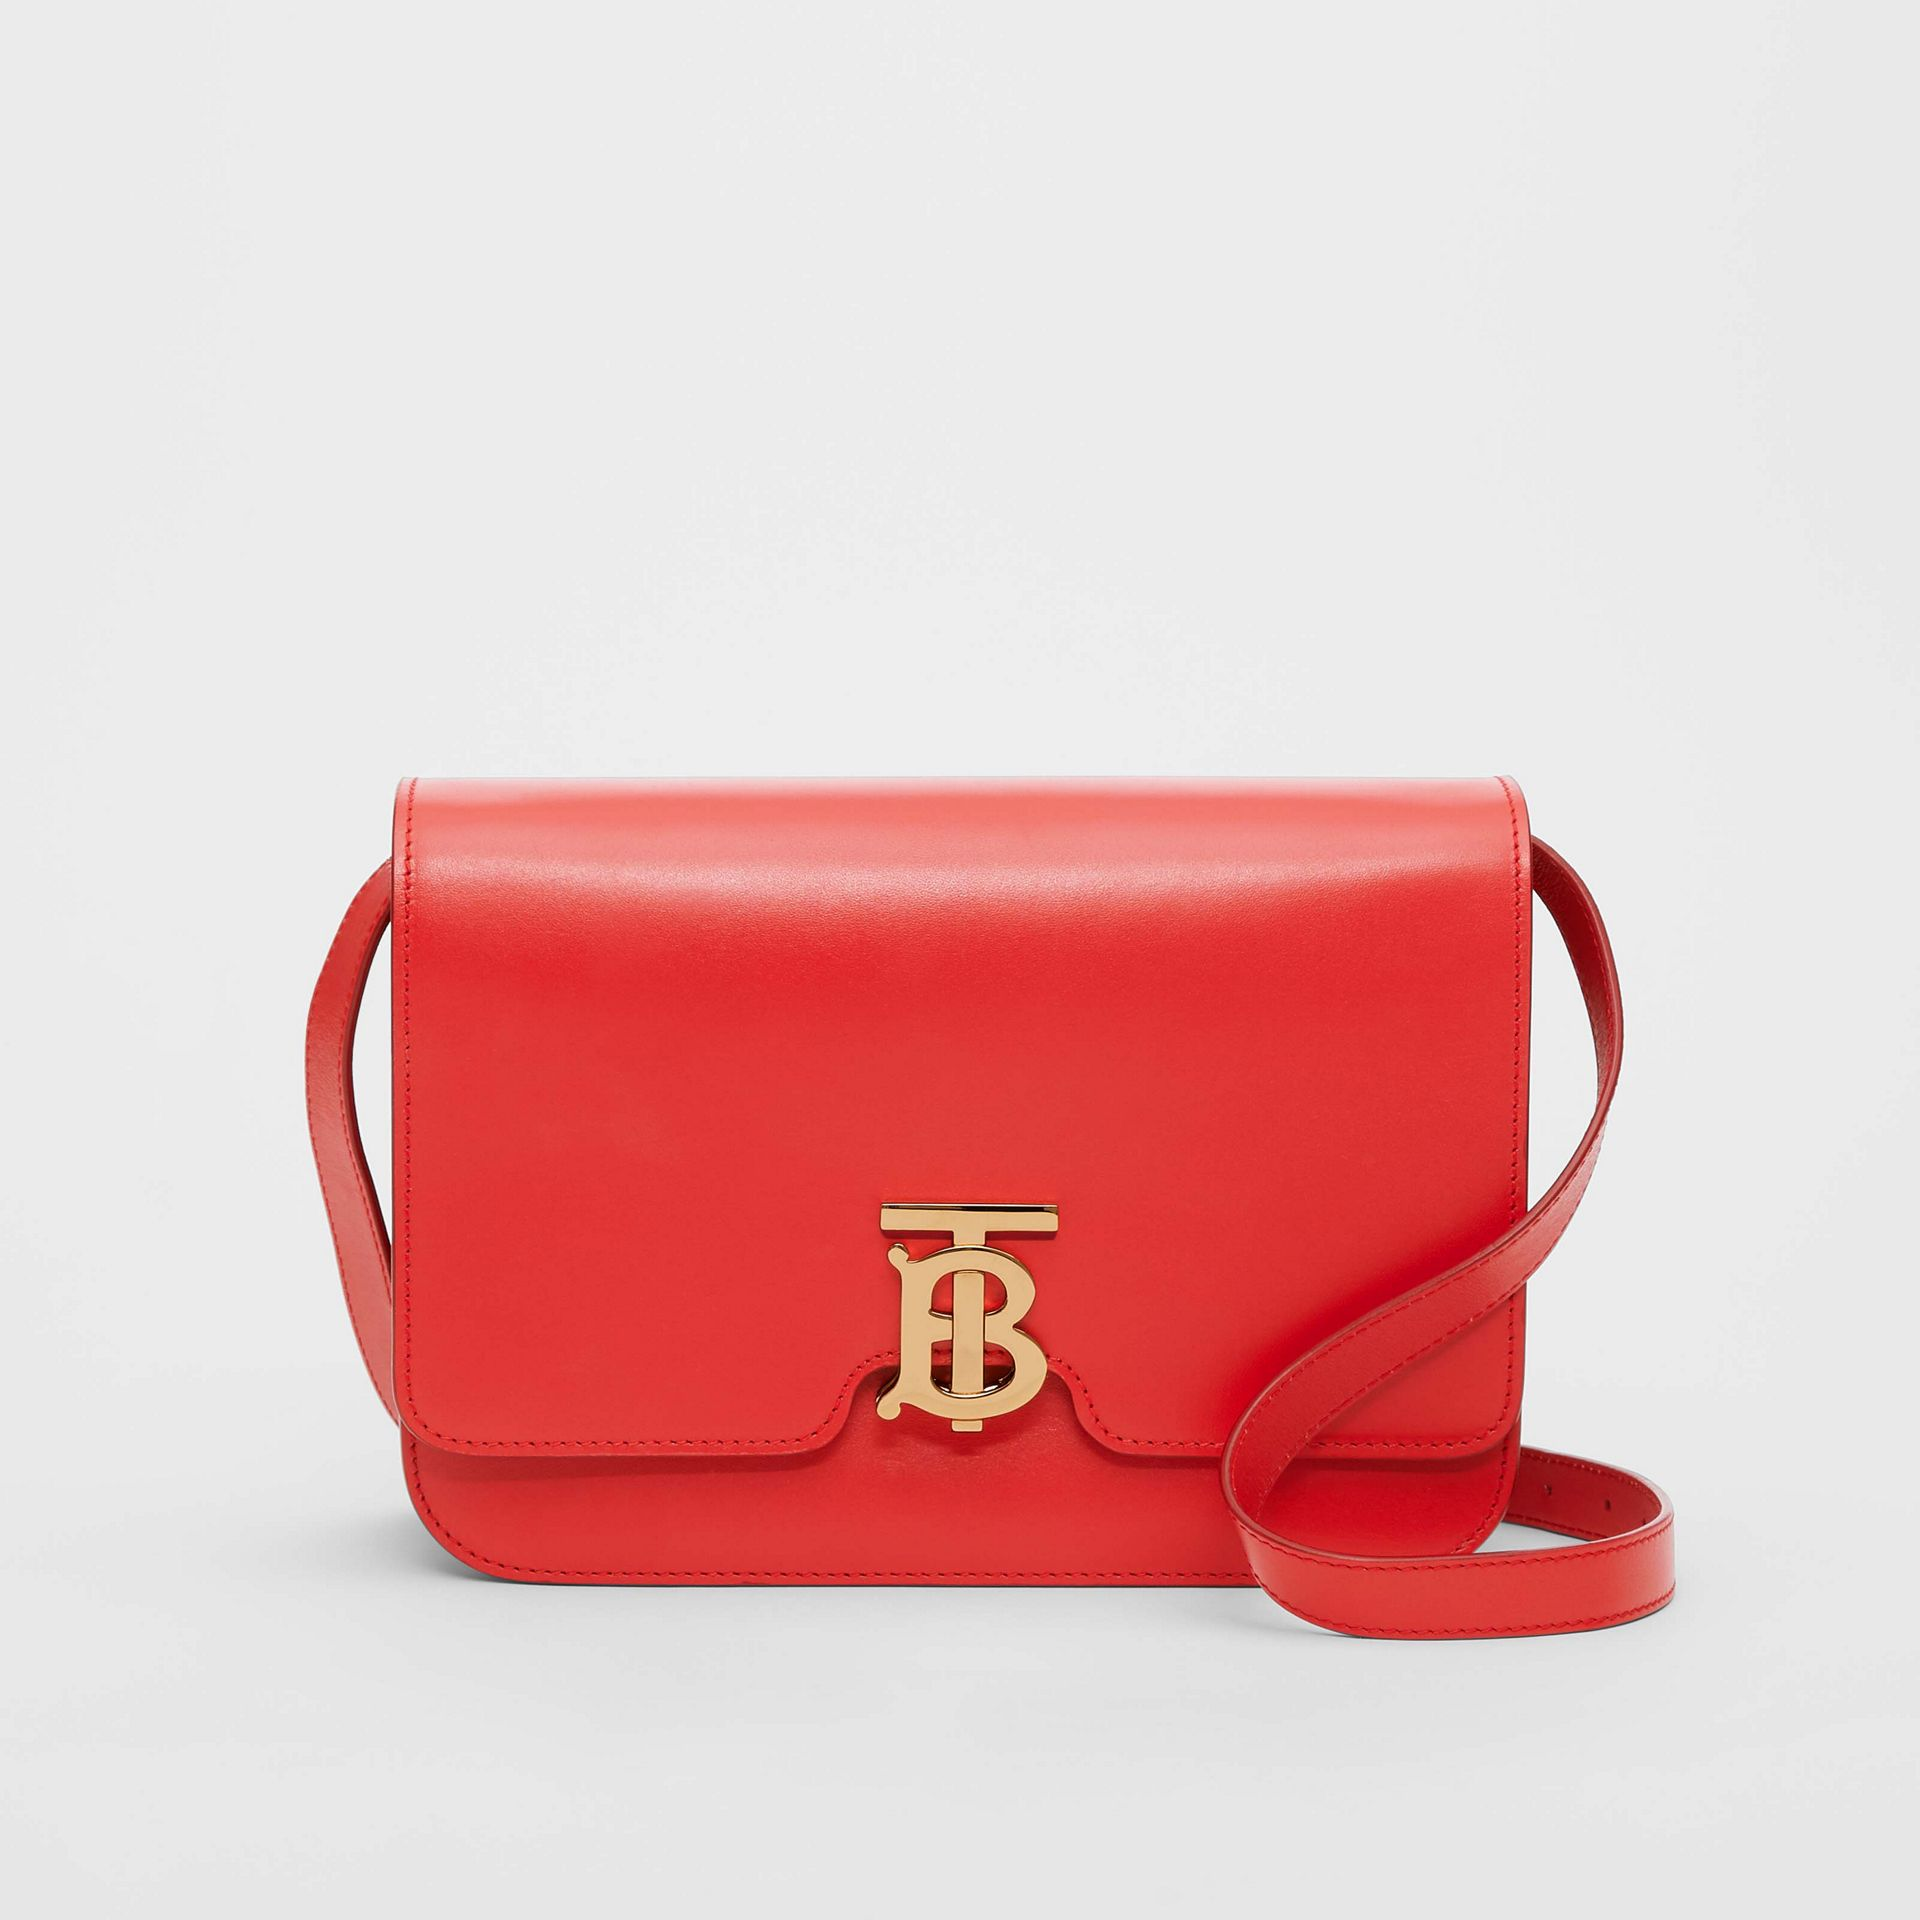 Medium Leather TB Bag in Bright Red - Women | Burberry - gallery image 0